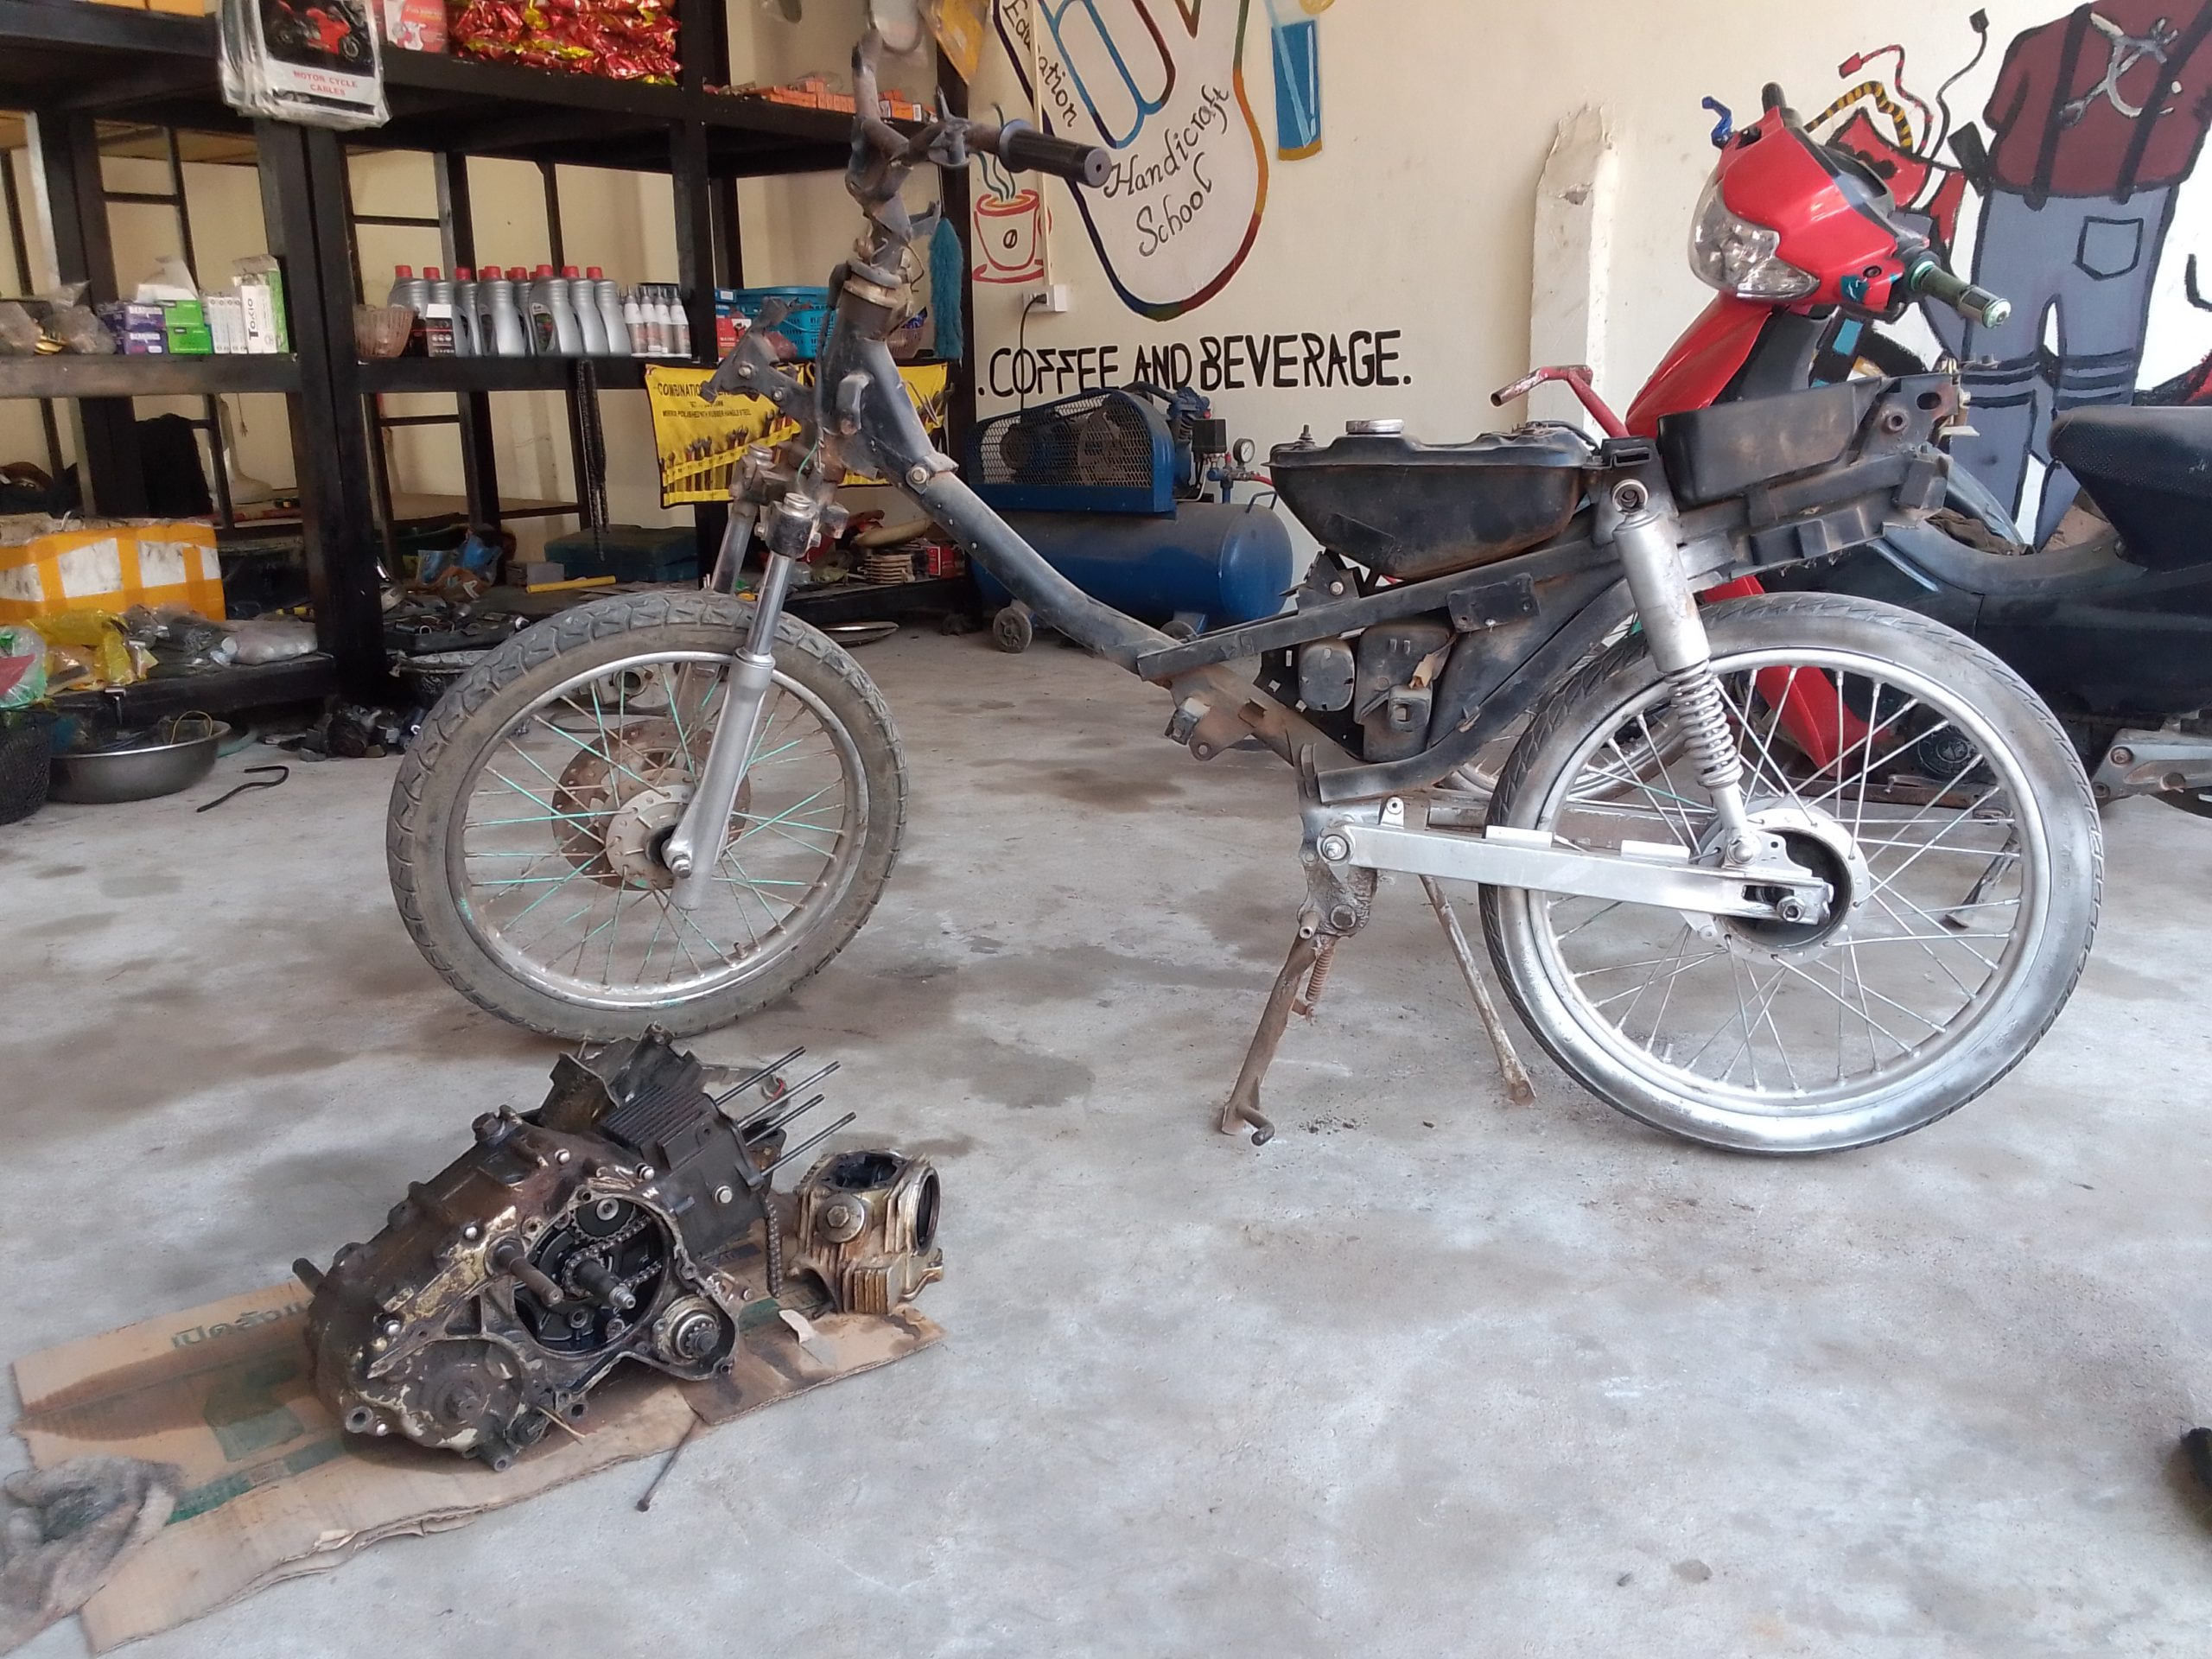 Stripped down moto, engine on the floor, Luang Prabang Deaf & Mute Community Training Centre